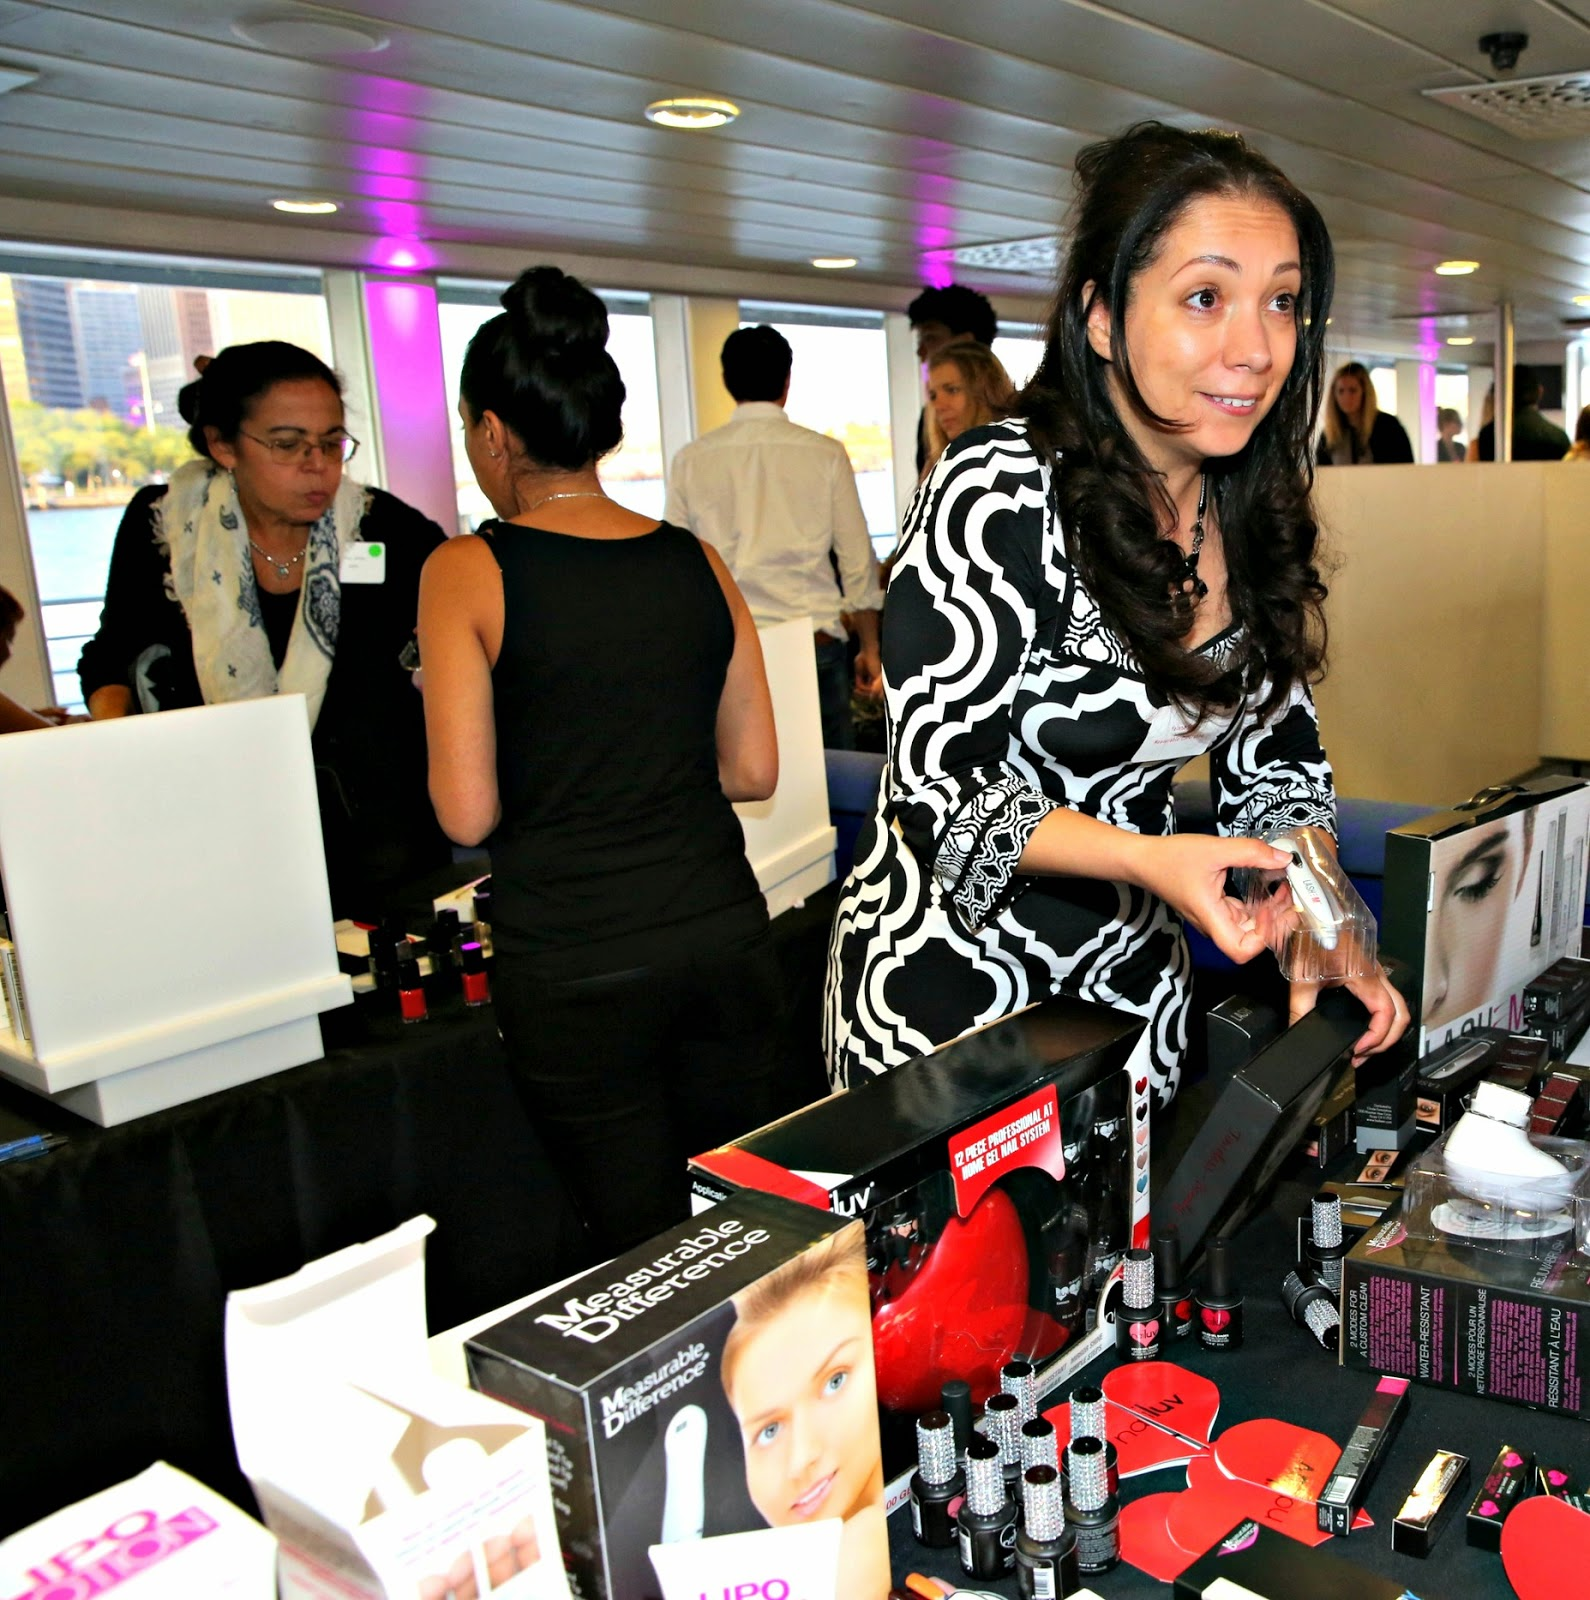 Measurable Differences on display at Beauty Press Spotlight Day aboard Zephyr Yacht